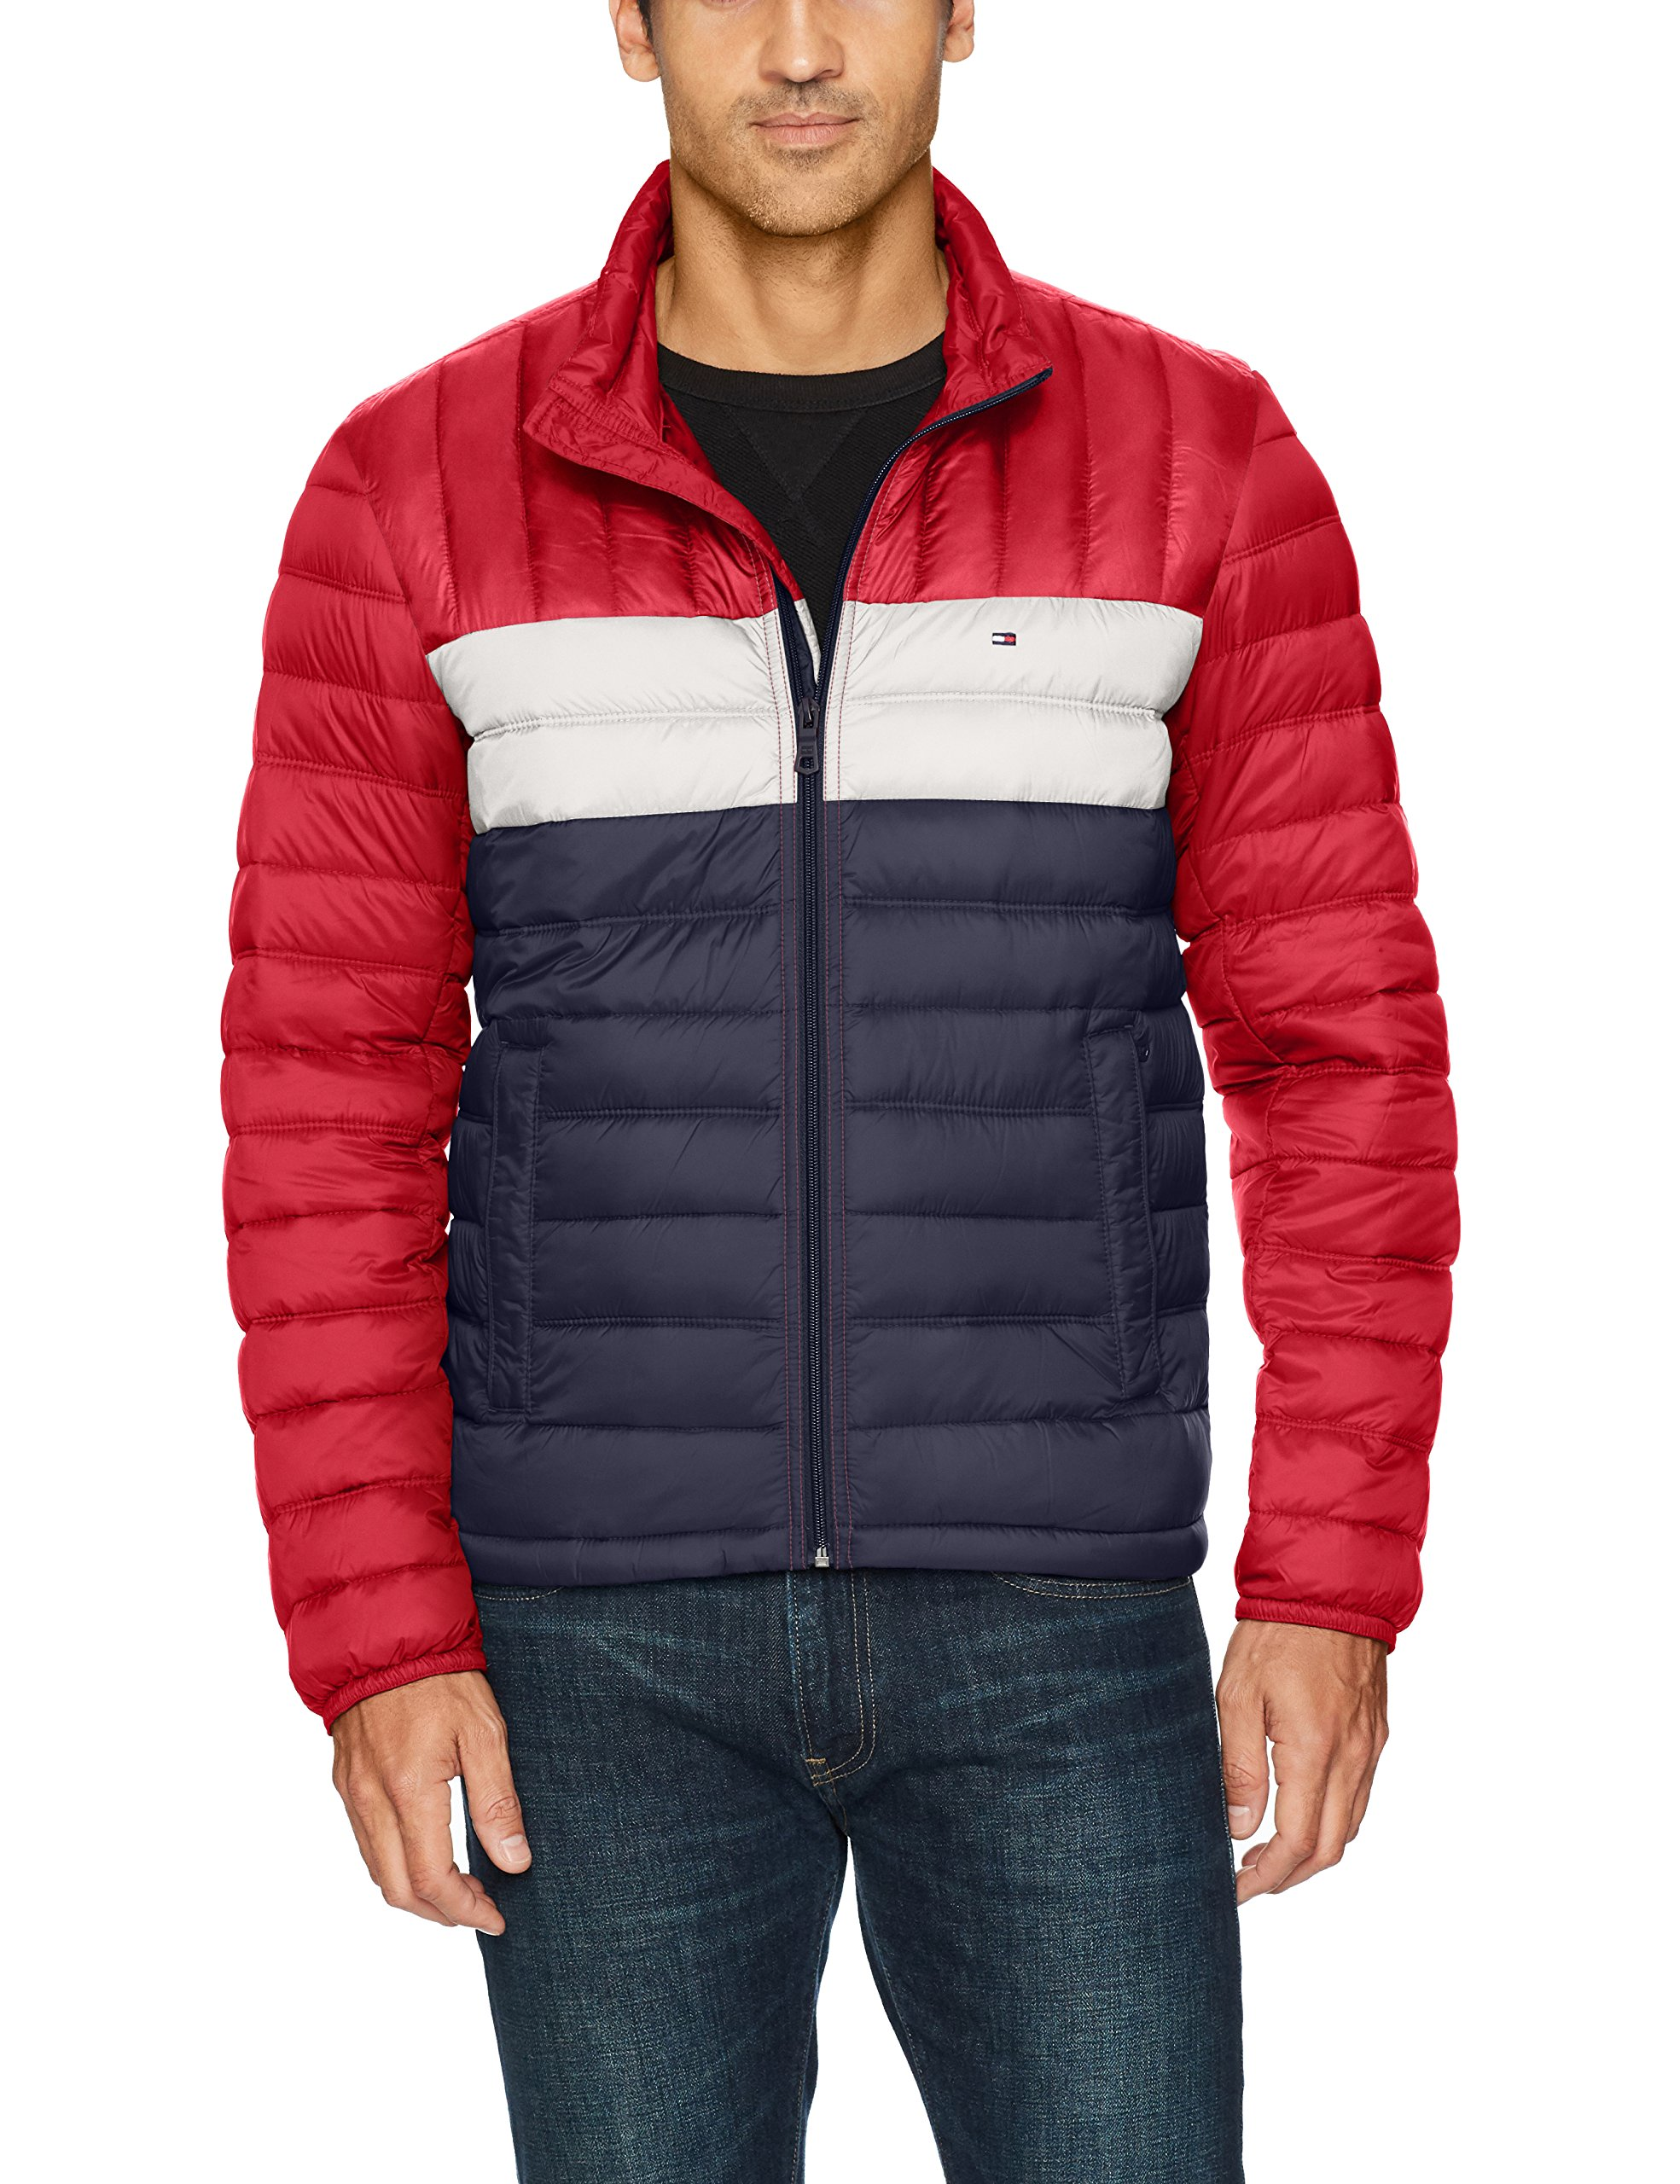 Tommy Hilfiger Men's Packable Down Jacket (Regular and Big & Tall Sizes), Red/White/Midnight, Small